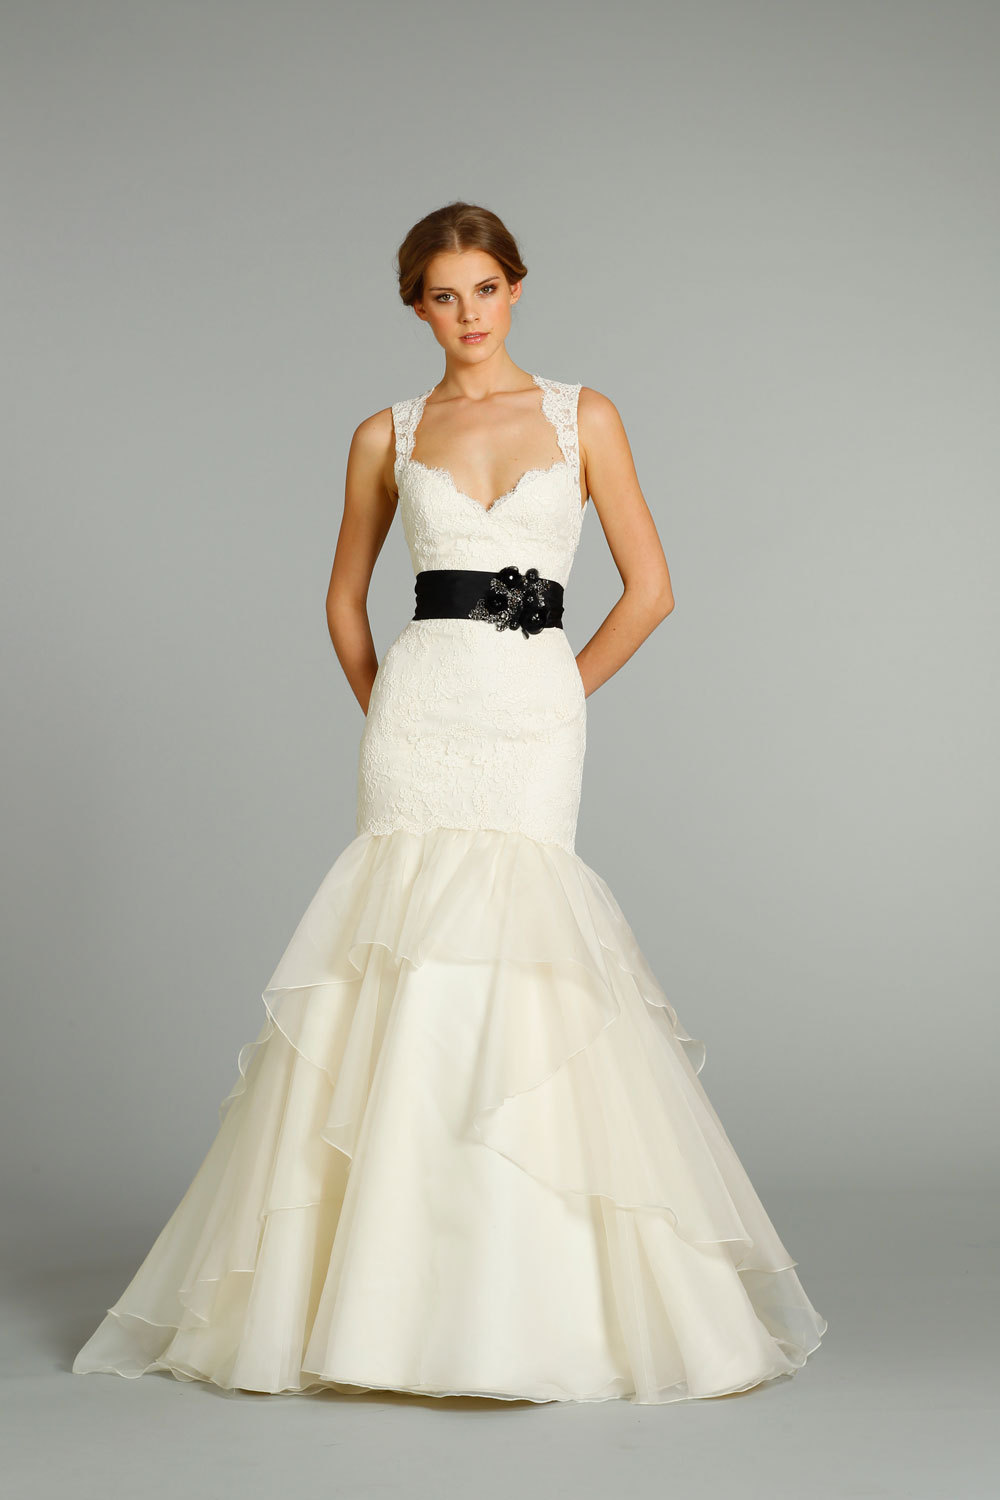 Fall-2012-wedding-dresses-jlm-couture-bridal-jim-hjelm-8262_front.full